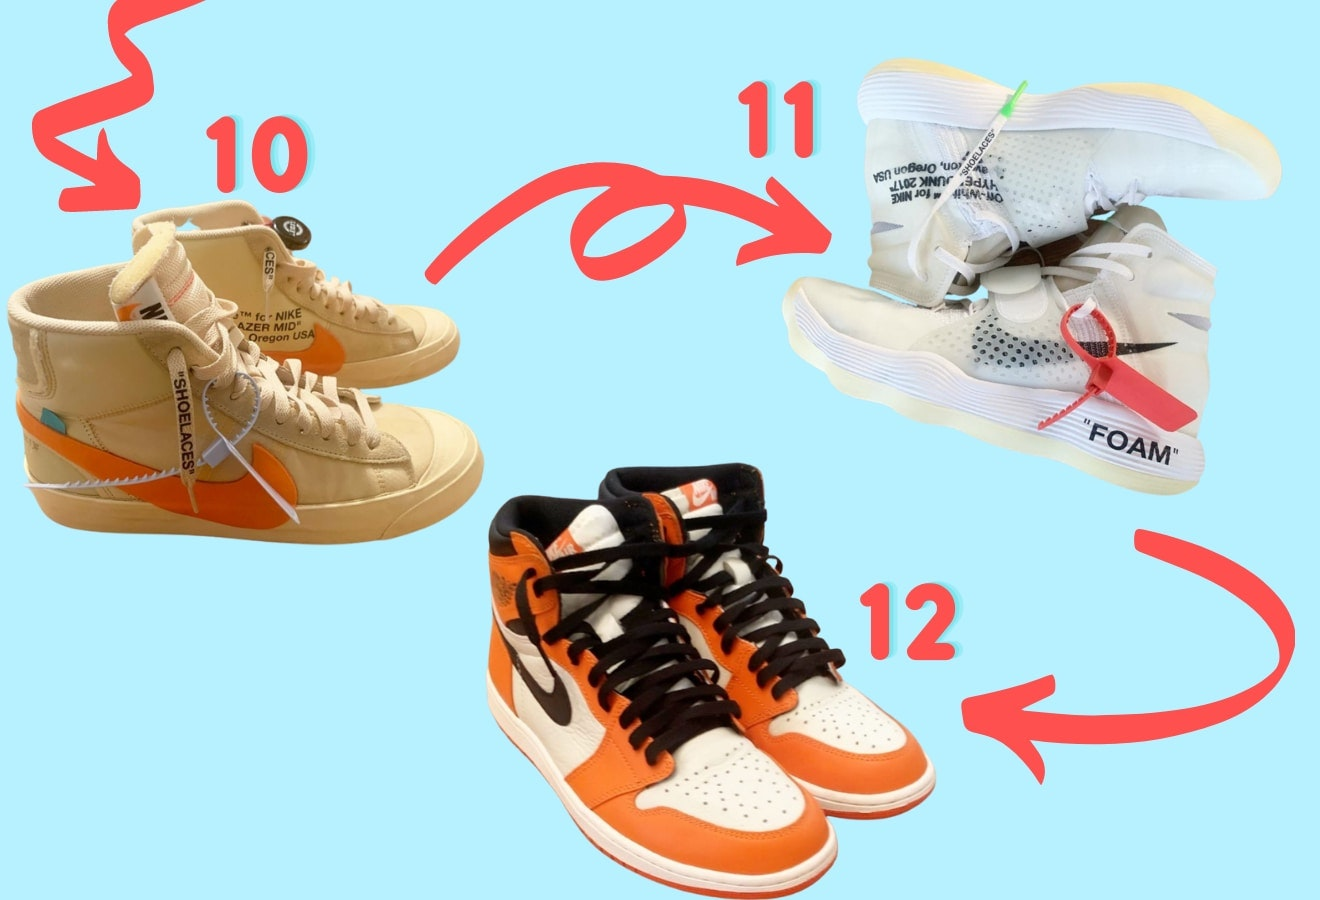 Demi's 10-12 trades were three different pairs of rare Nike sneakers